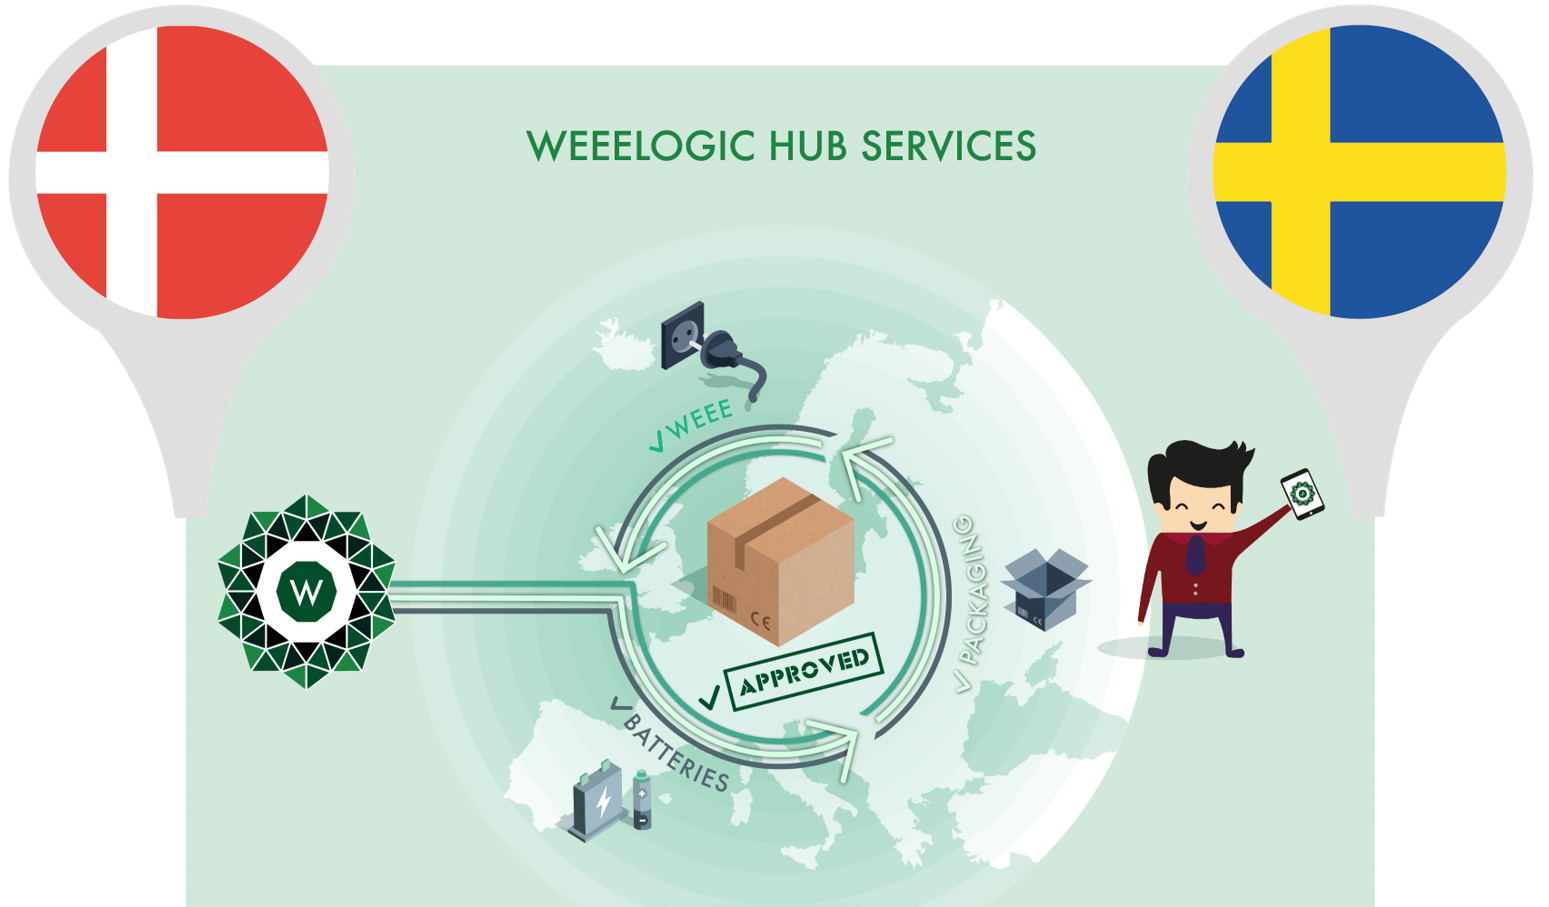 Electronics recycling image as related to WEEE in Sweden